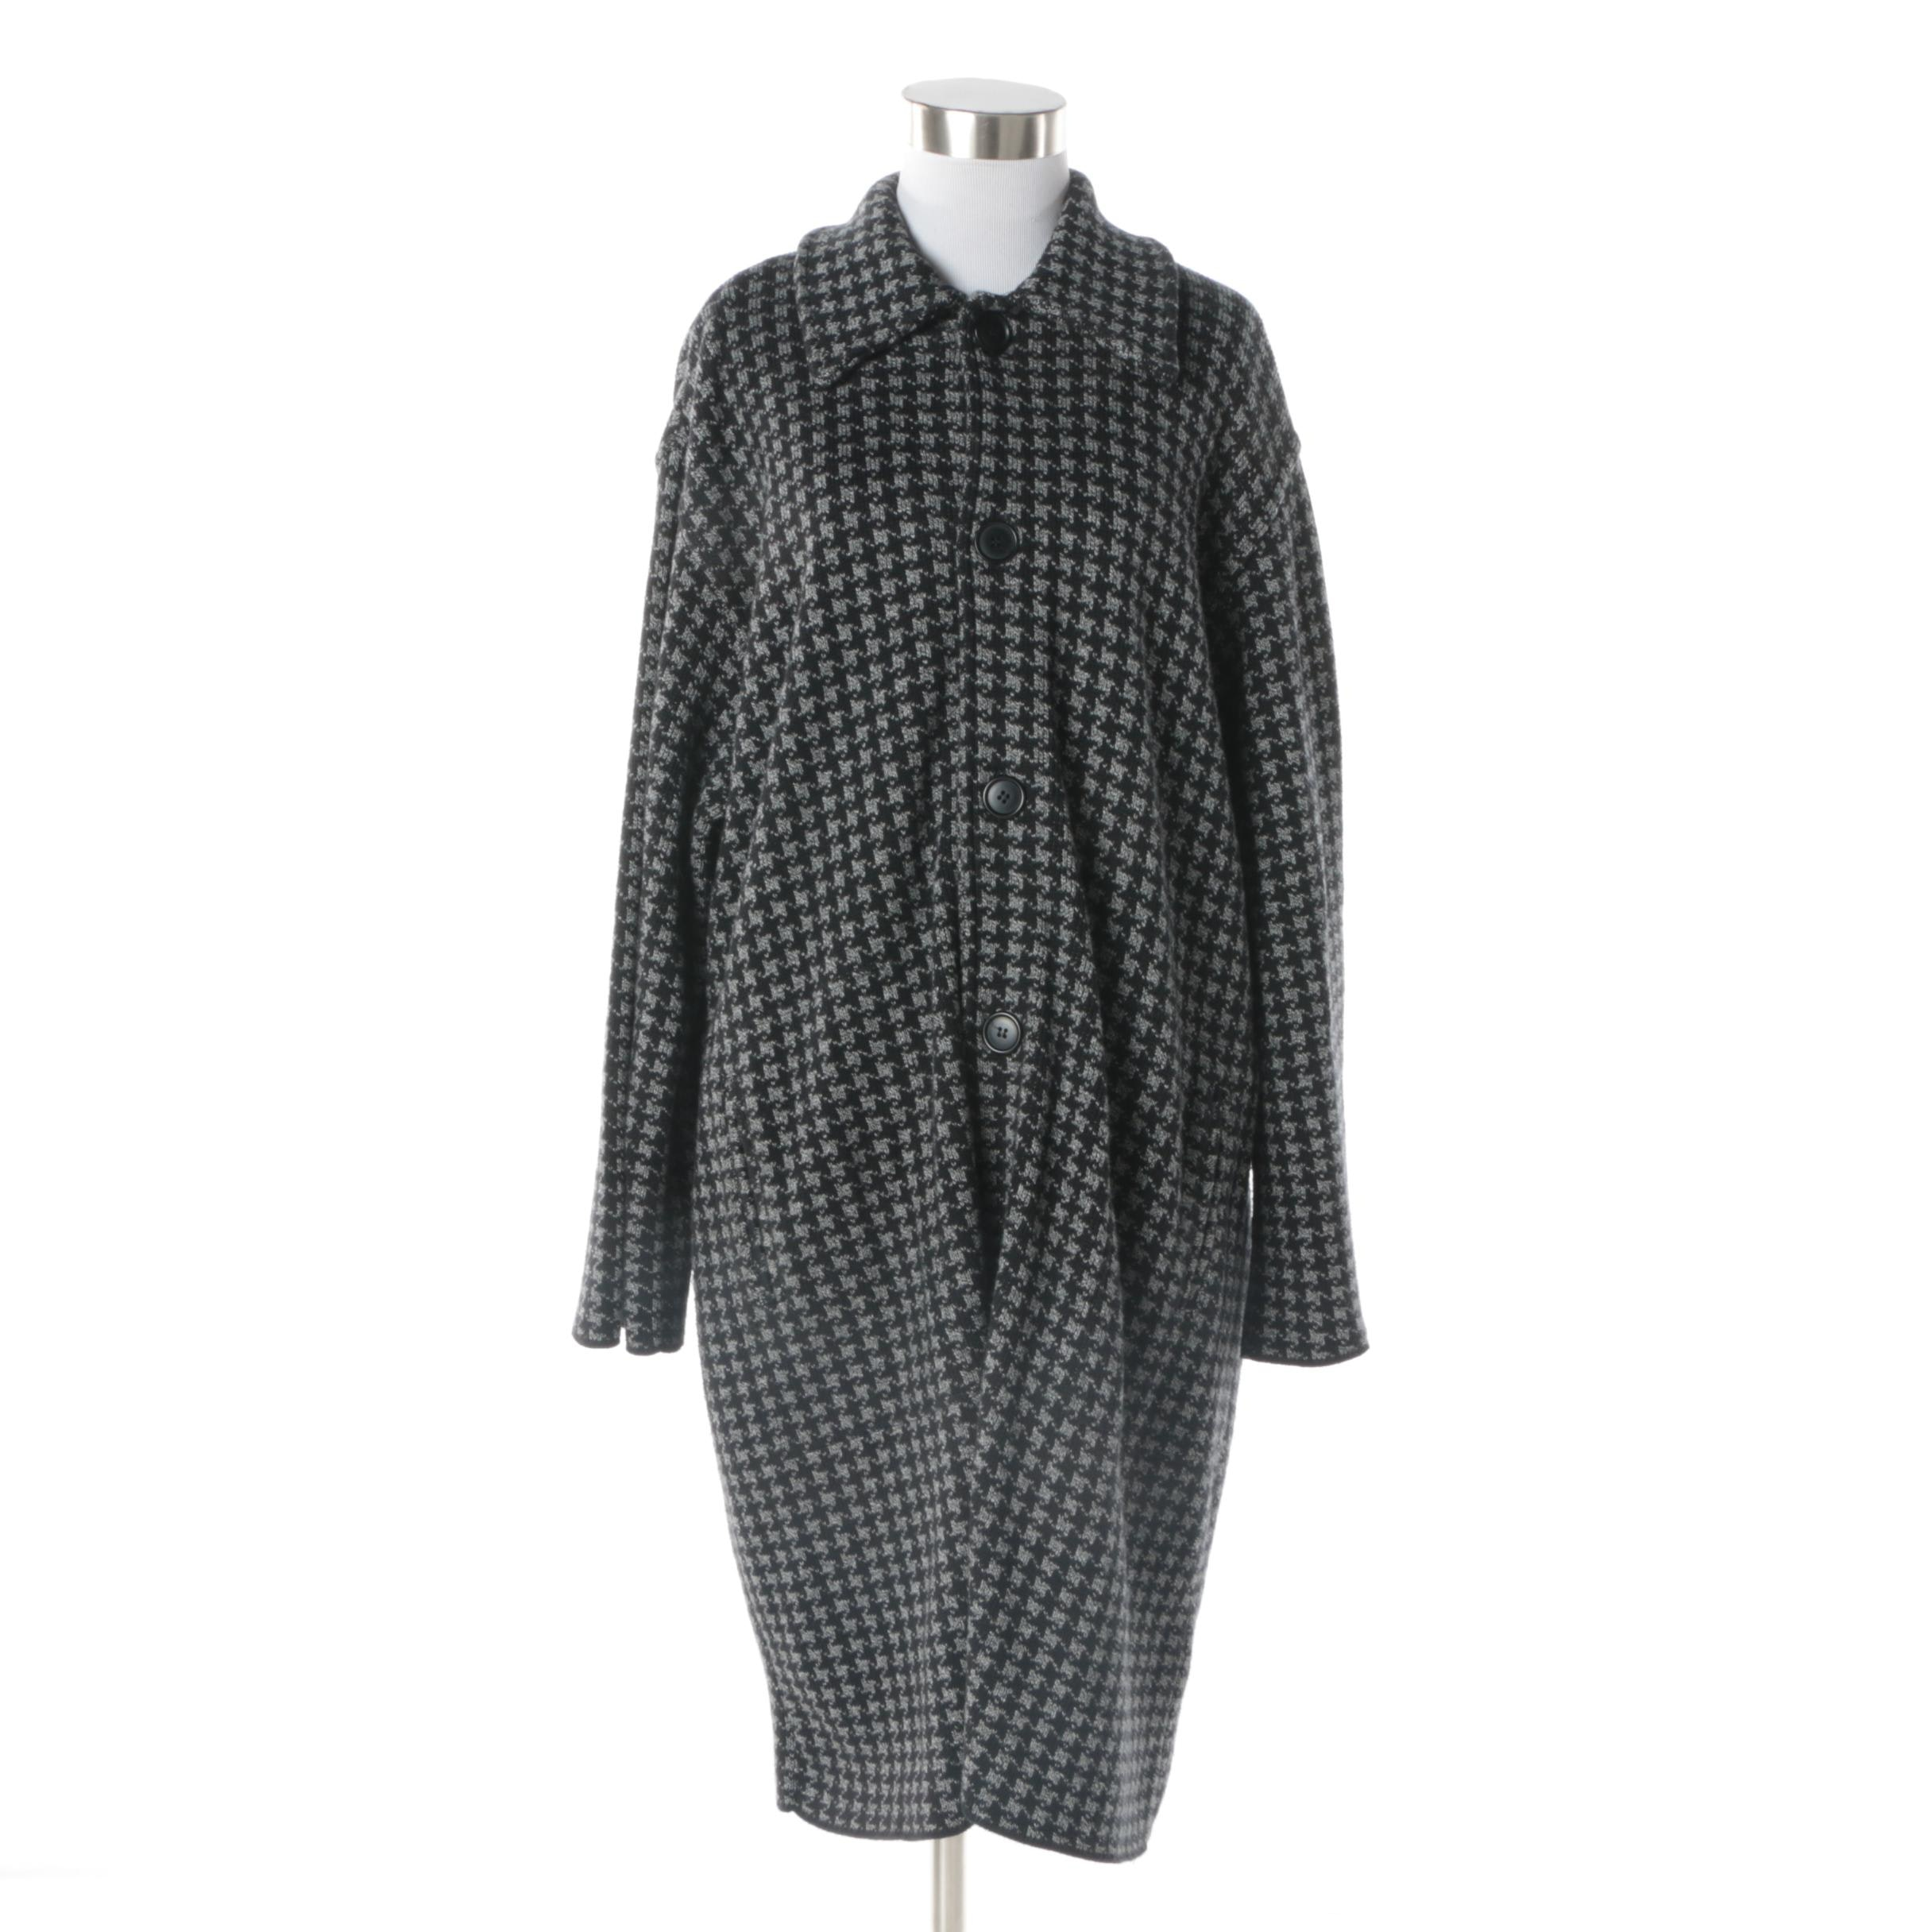 Women's Joan Vass Grey and Black Knit Houndstooth Coat